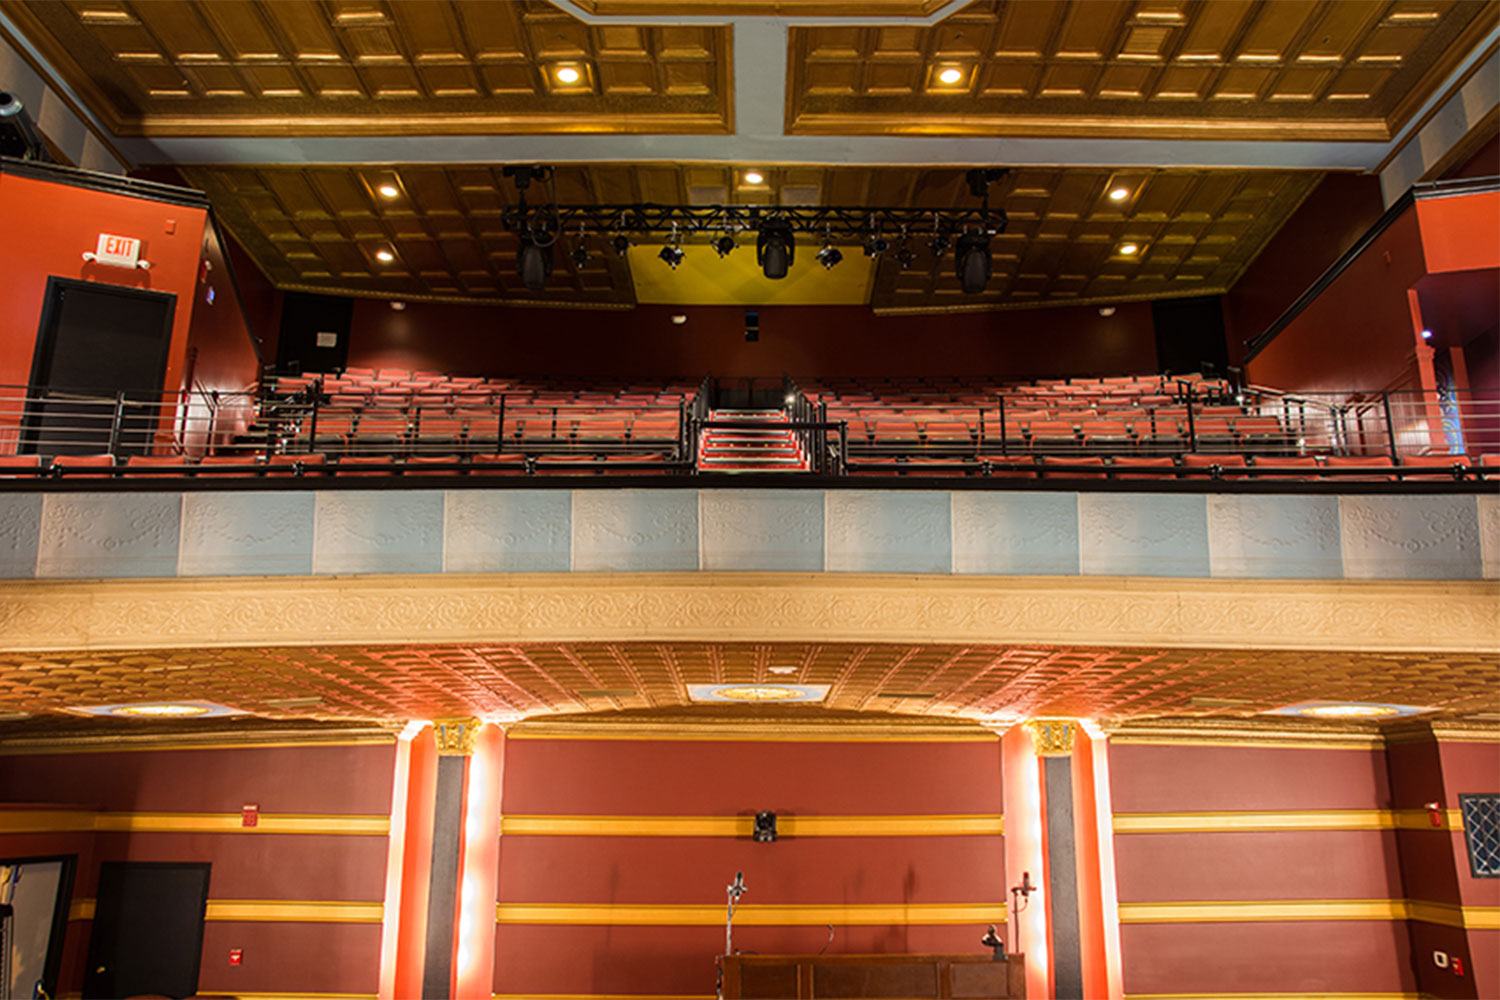 The Avalon Foundation, which runs the Avalon Theatre, secured the services of WSDG during a larger overall renovation initiative to update the theater's acoustics, production lighting, and audiovisual capabilities. Balcony.